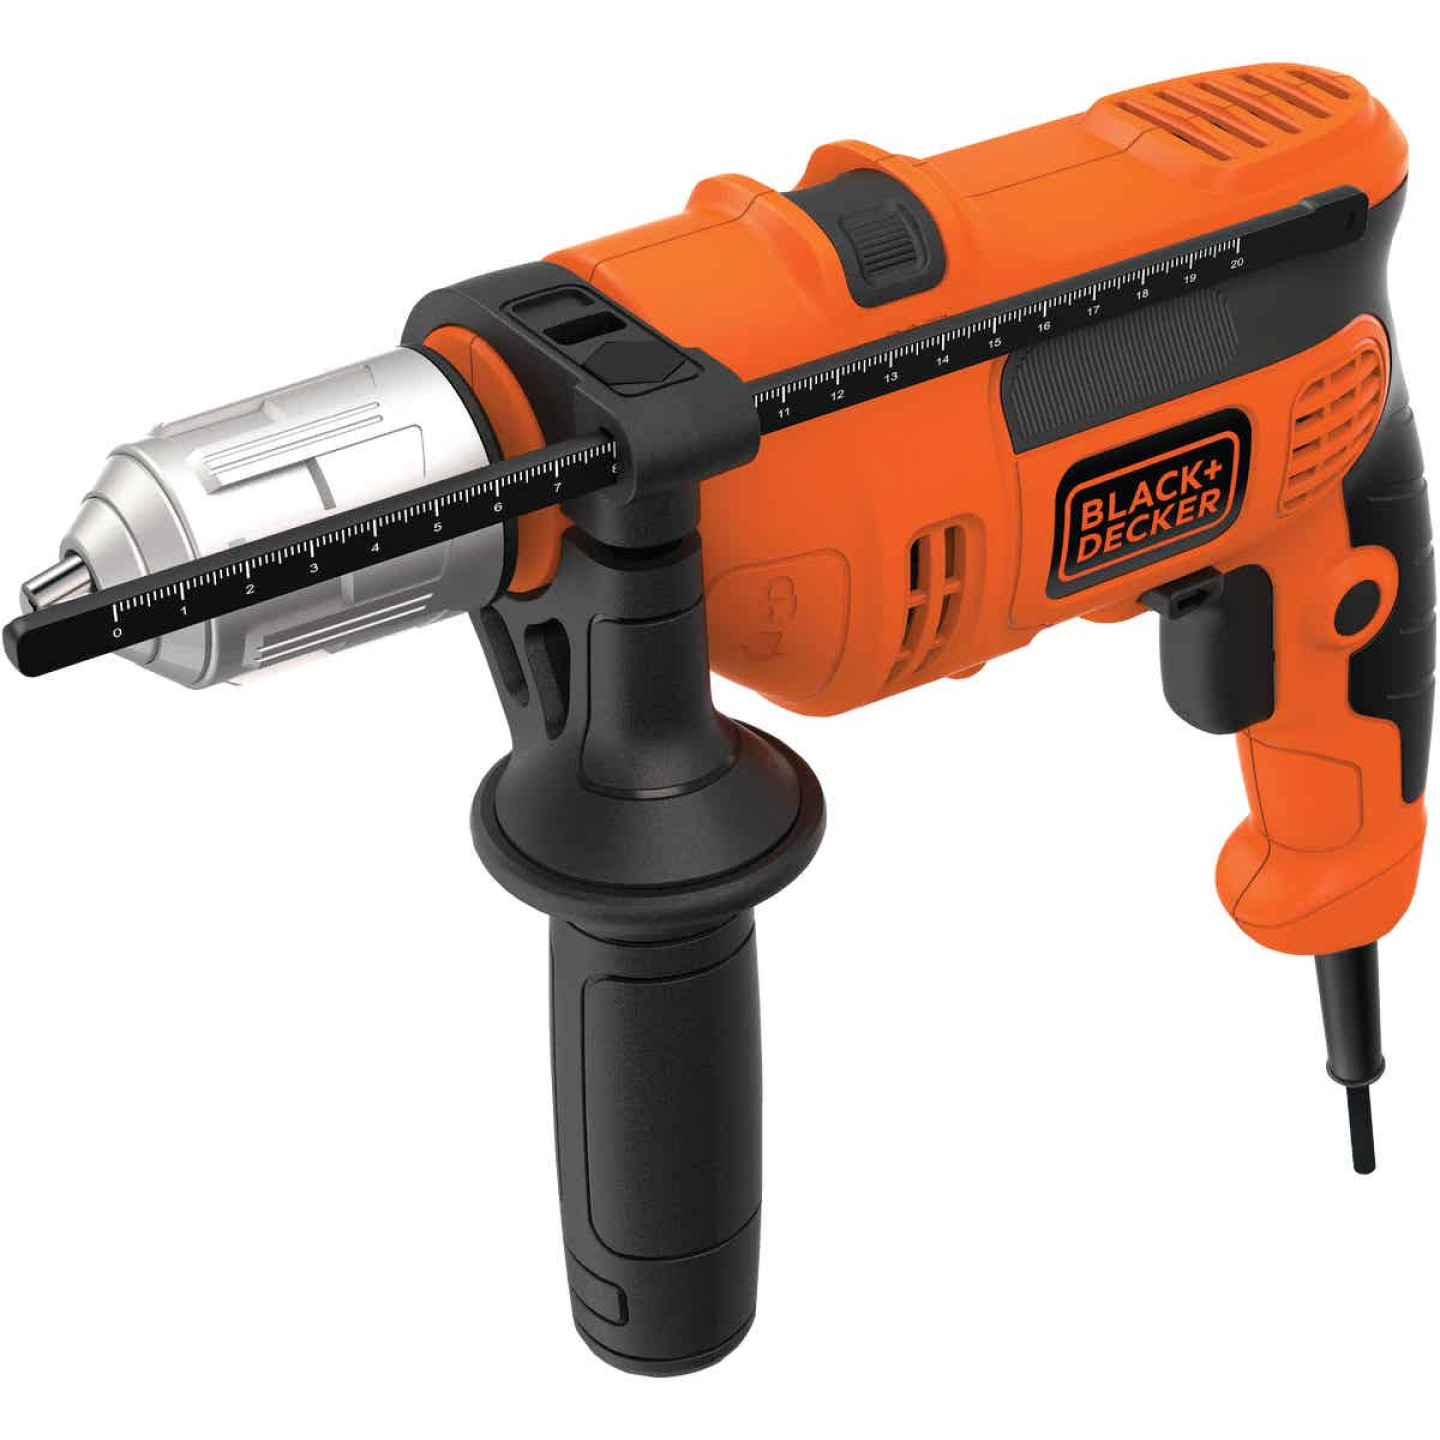 Black and Decker 1/2 In. 6.5-Amp Keyless Electric Hammer Drill Image 5